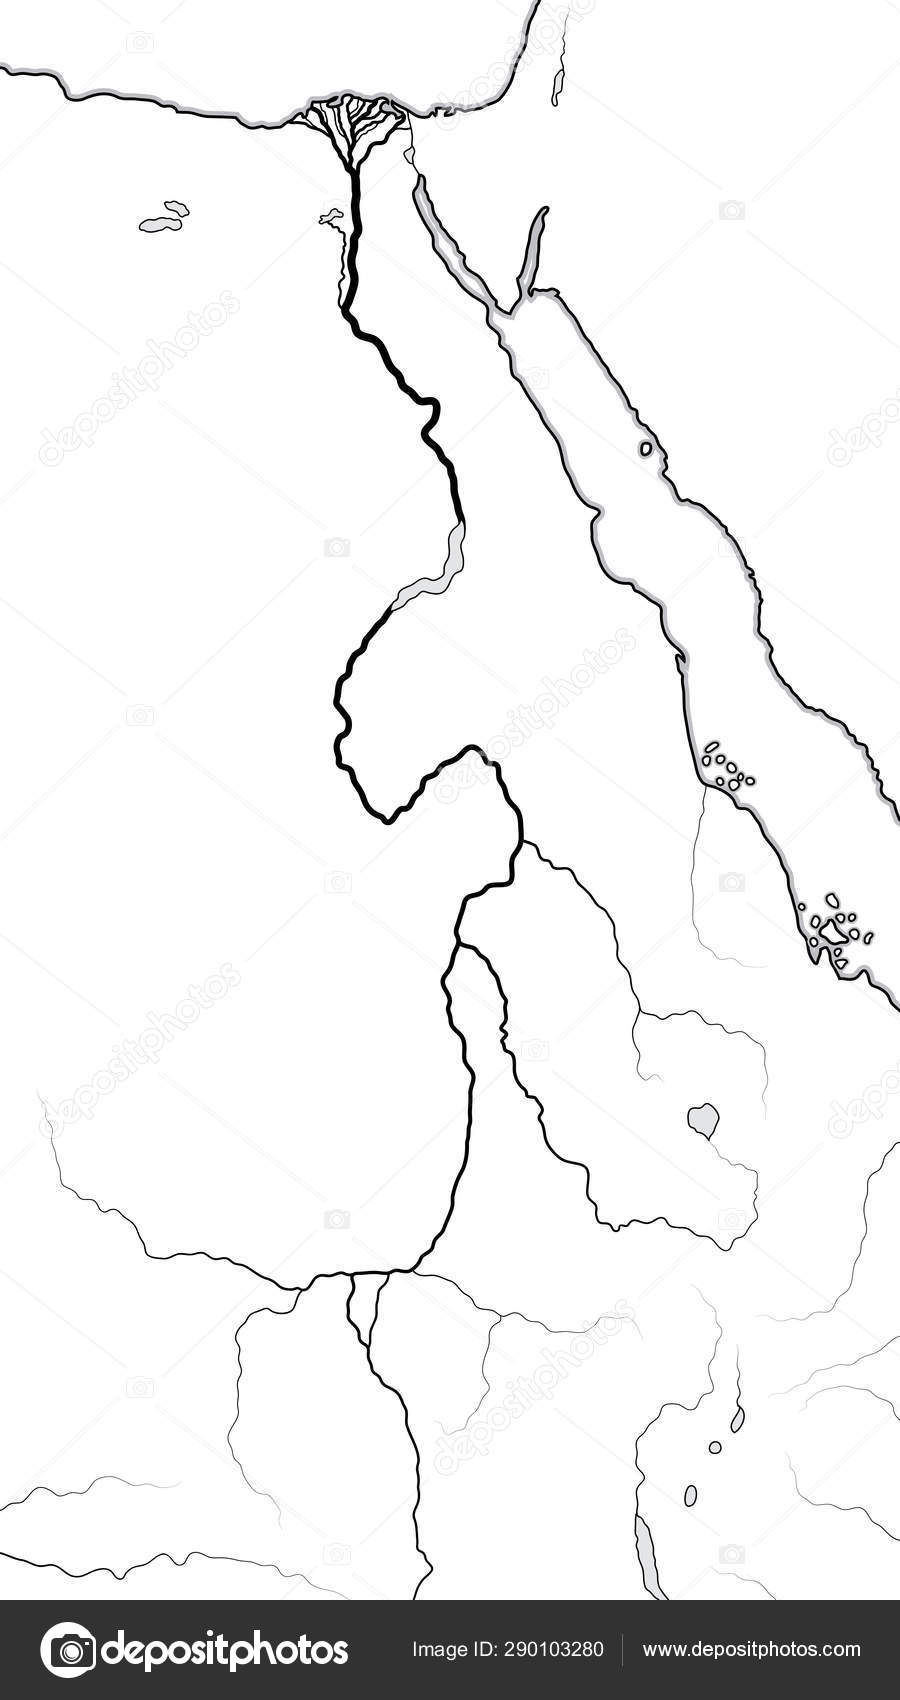 World Map of The NILE RIVER Valley & Delta: Africa, Ancient ...